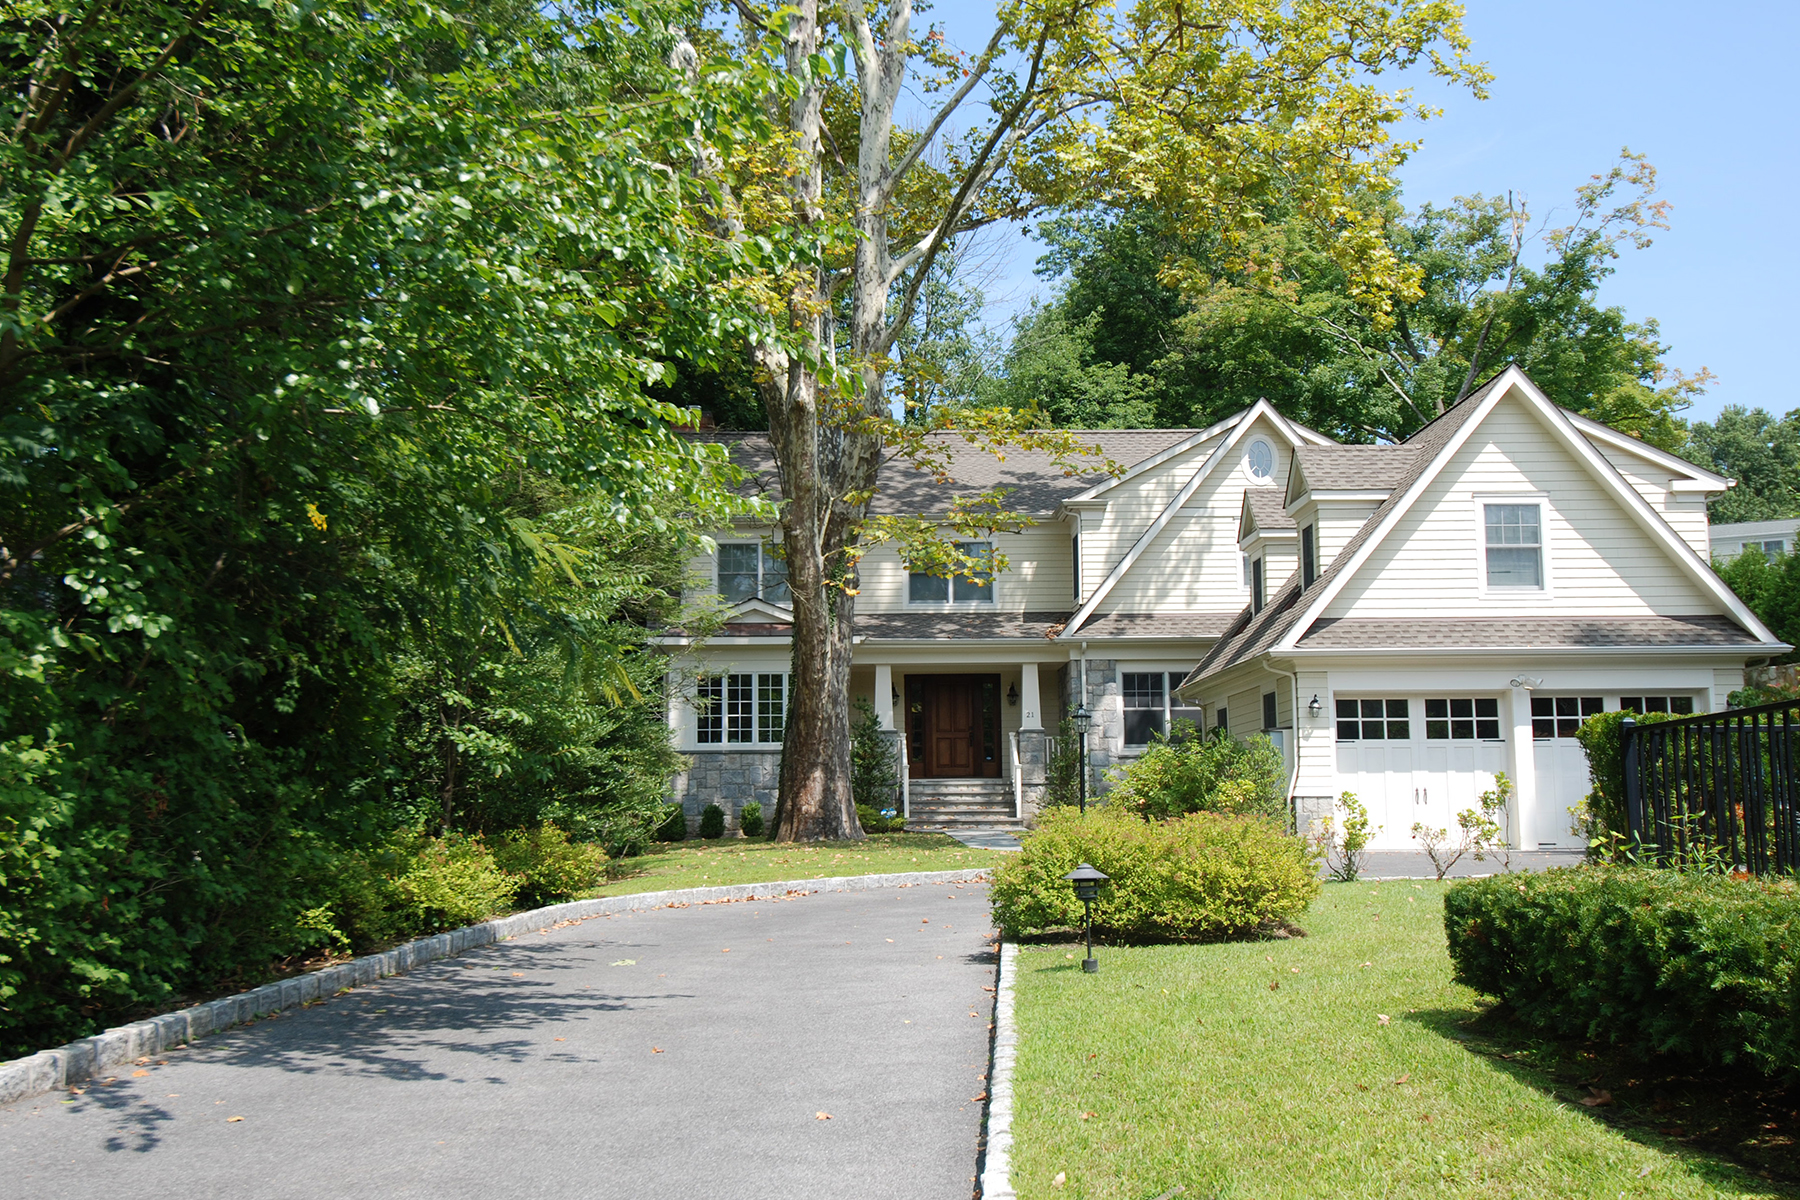 Single Family Home for Rent at Exquisite Center Hall Colonial 21 Windmill Lane Scarsdale, 10583 United States